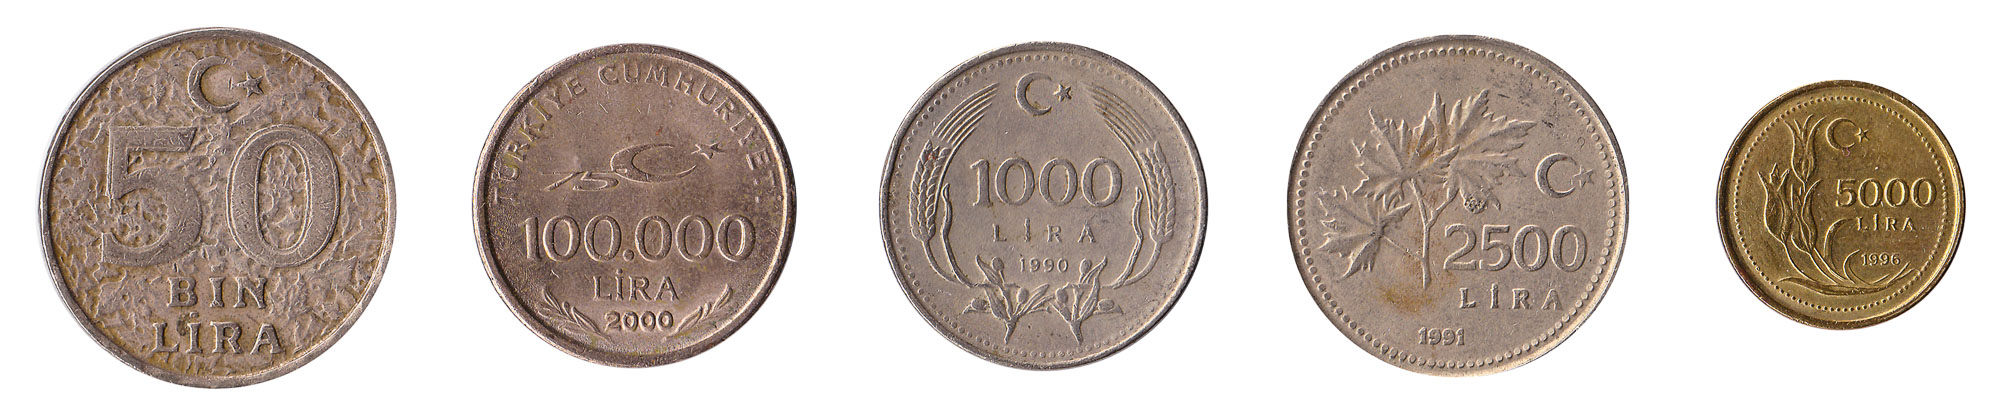 1000 lira coin Turkey inflation